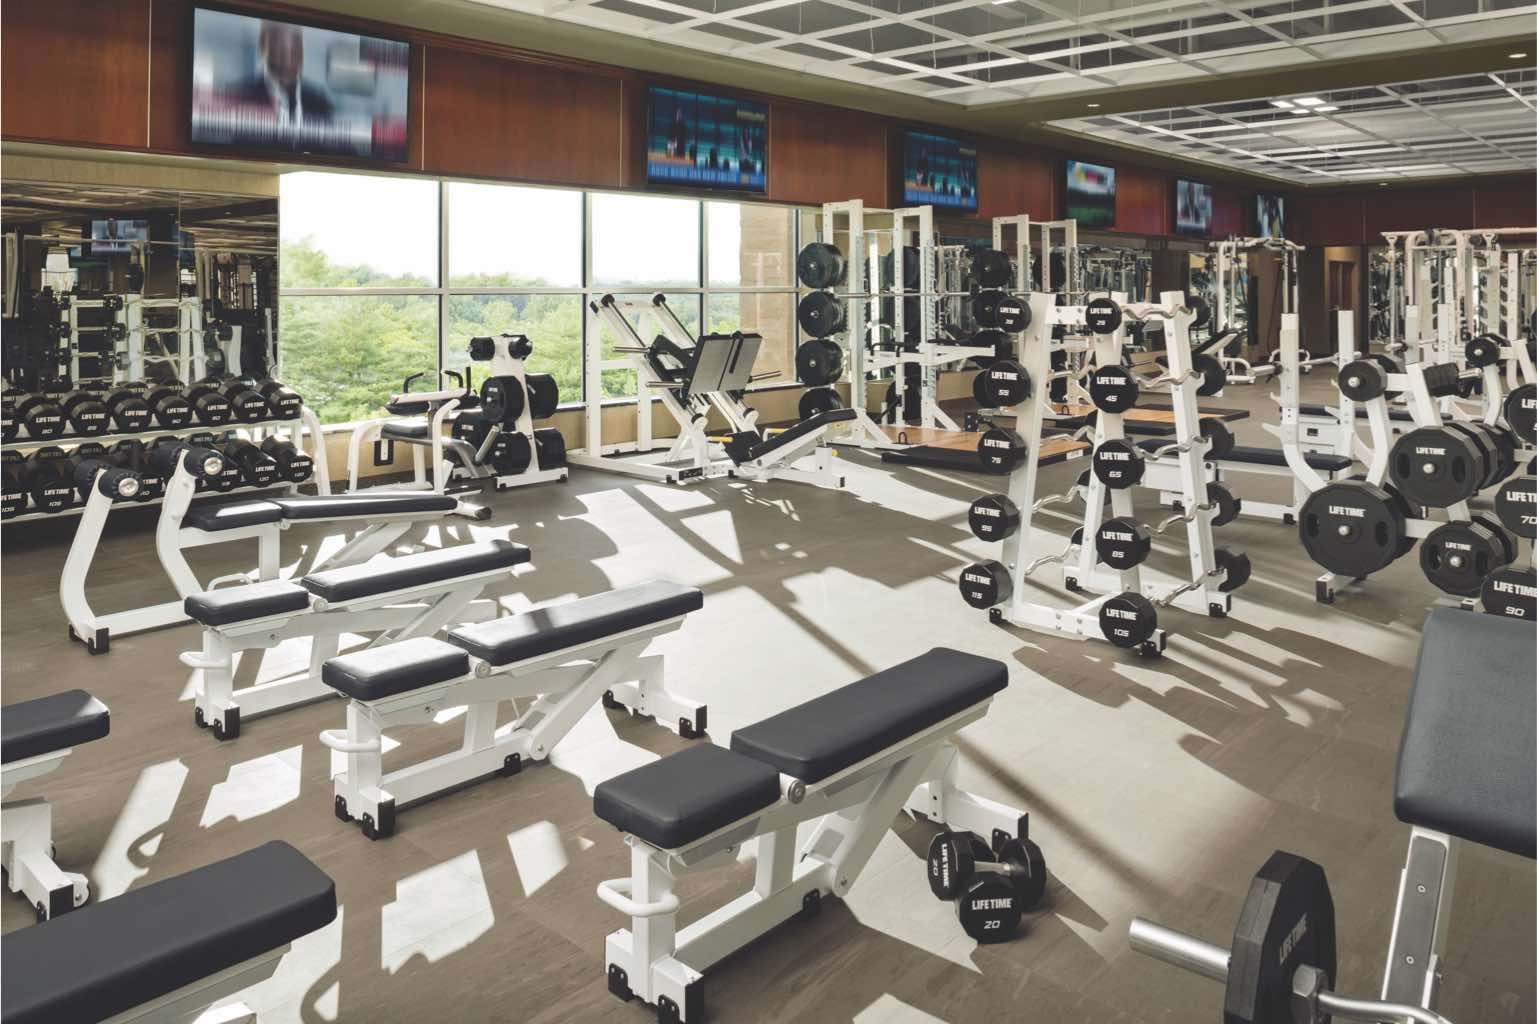 Alpha training area at Life Time with Olympic-style squat racks, barbells and mats